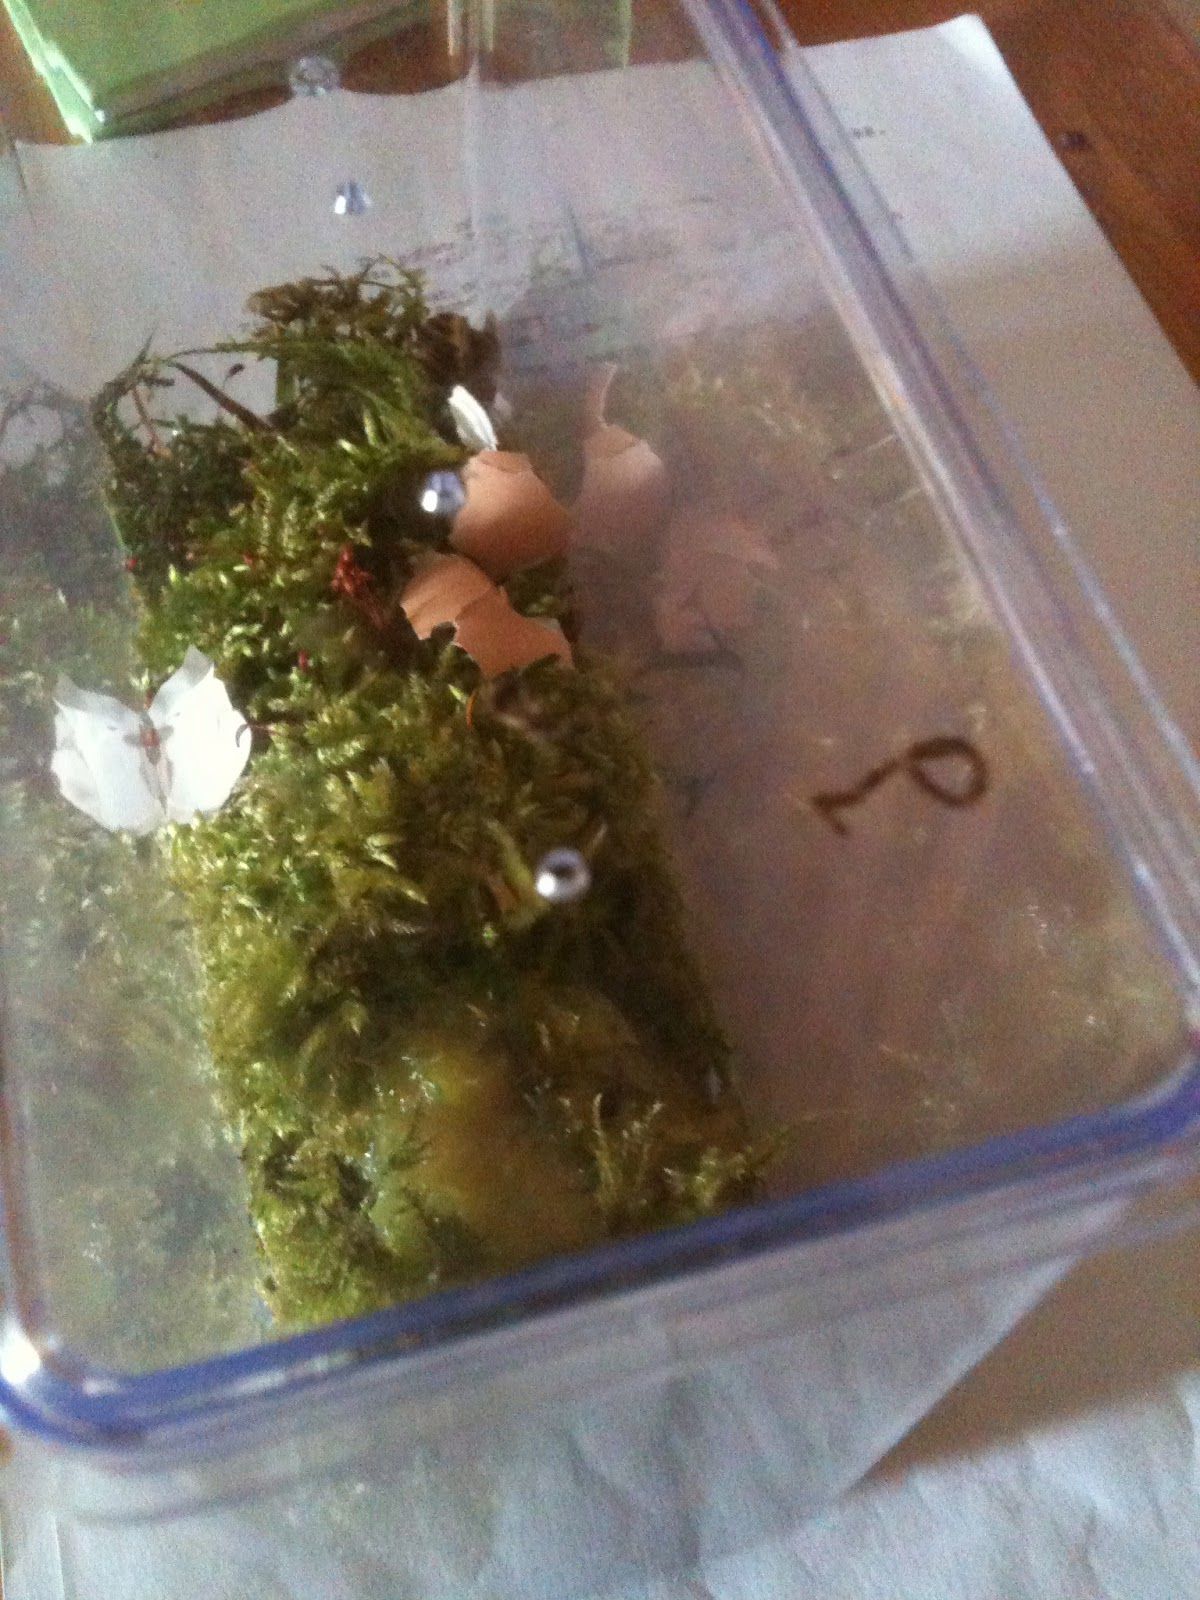 how to put egg shells in garden to prevent snails